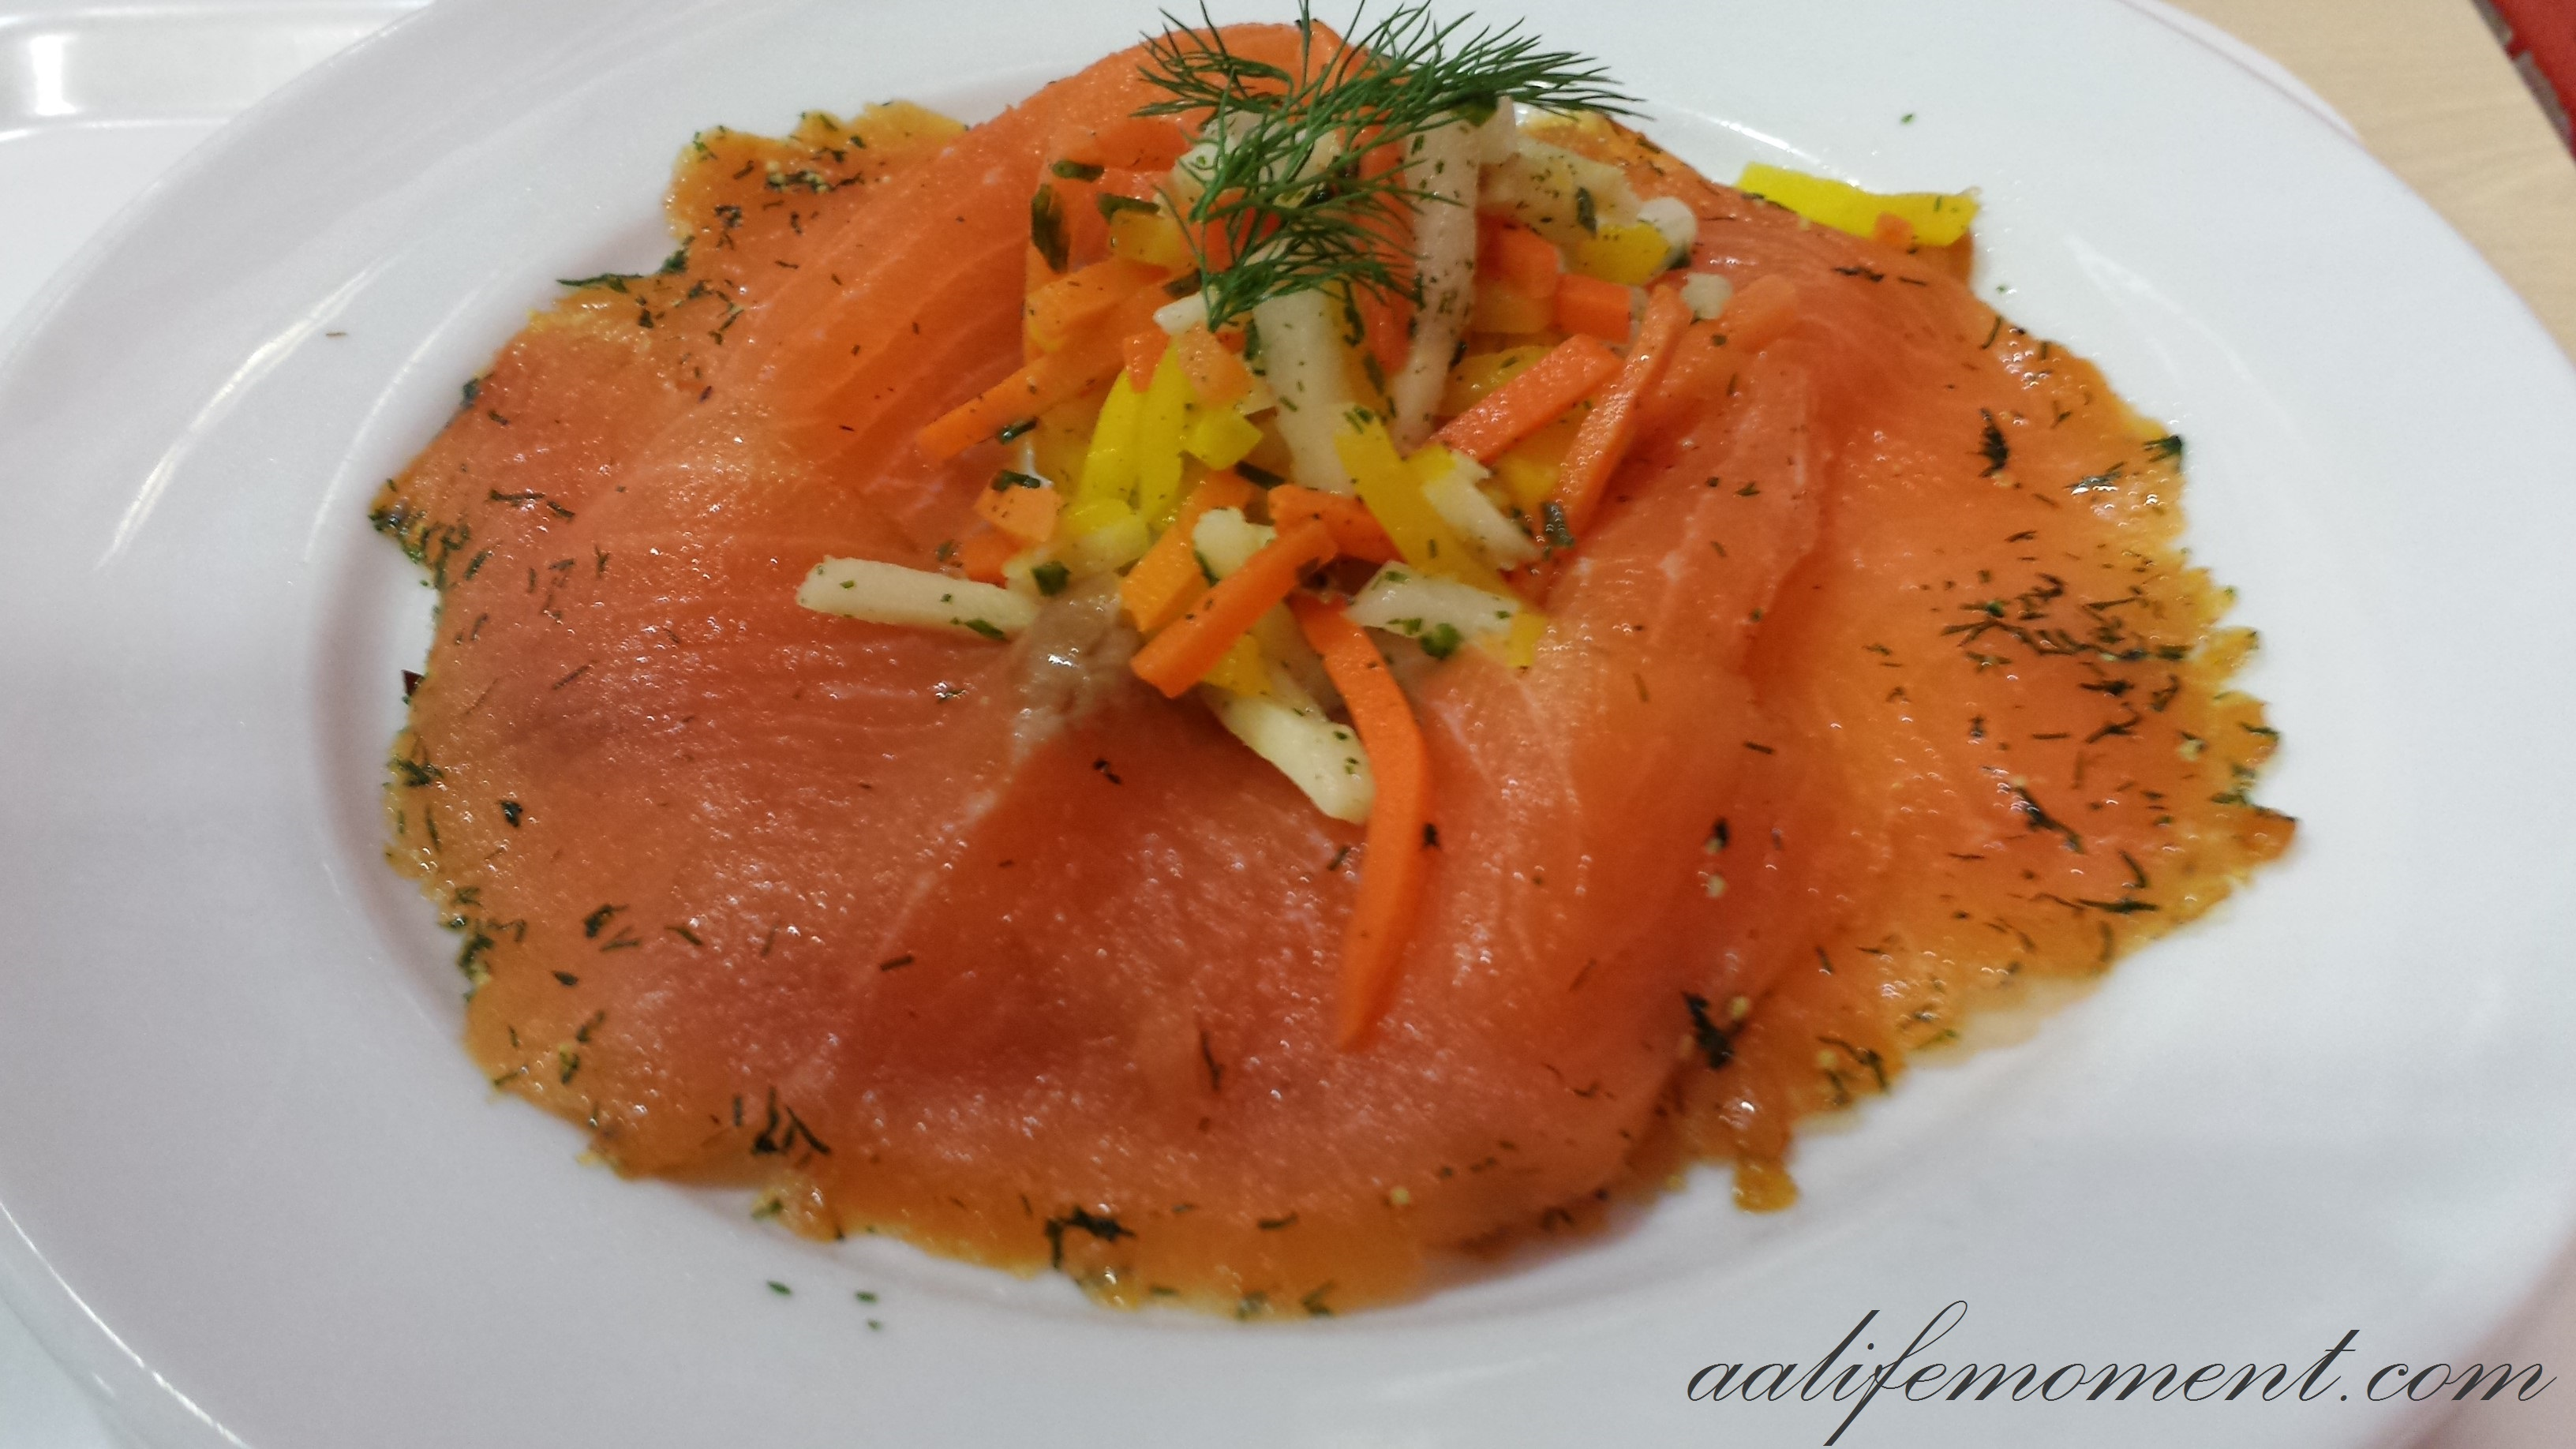 Smoked salmon and root vegetables